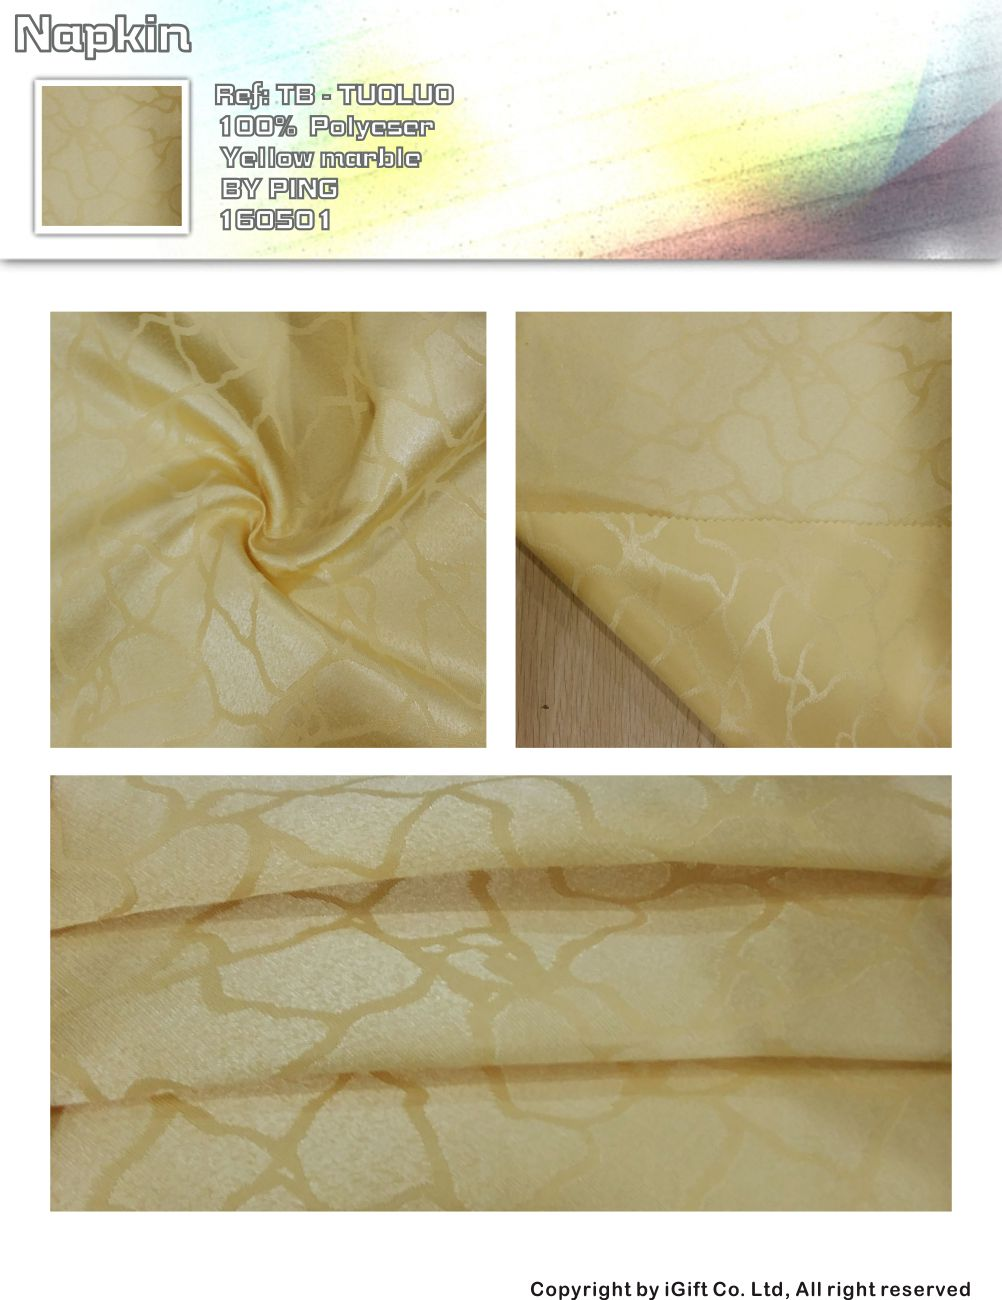 Napkin-yellow marble